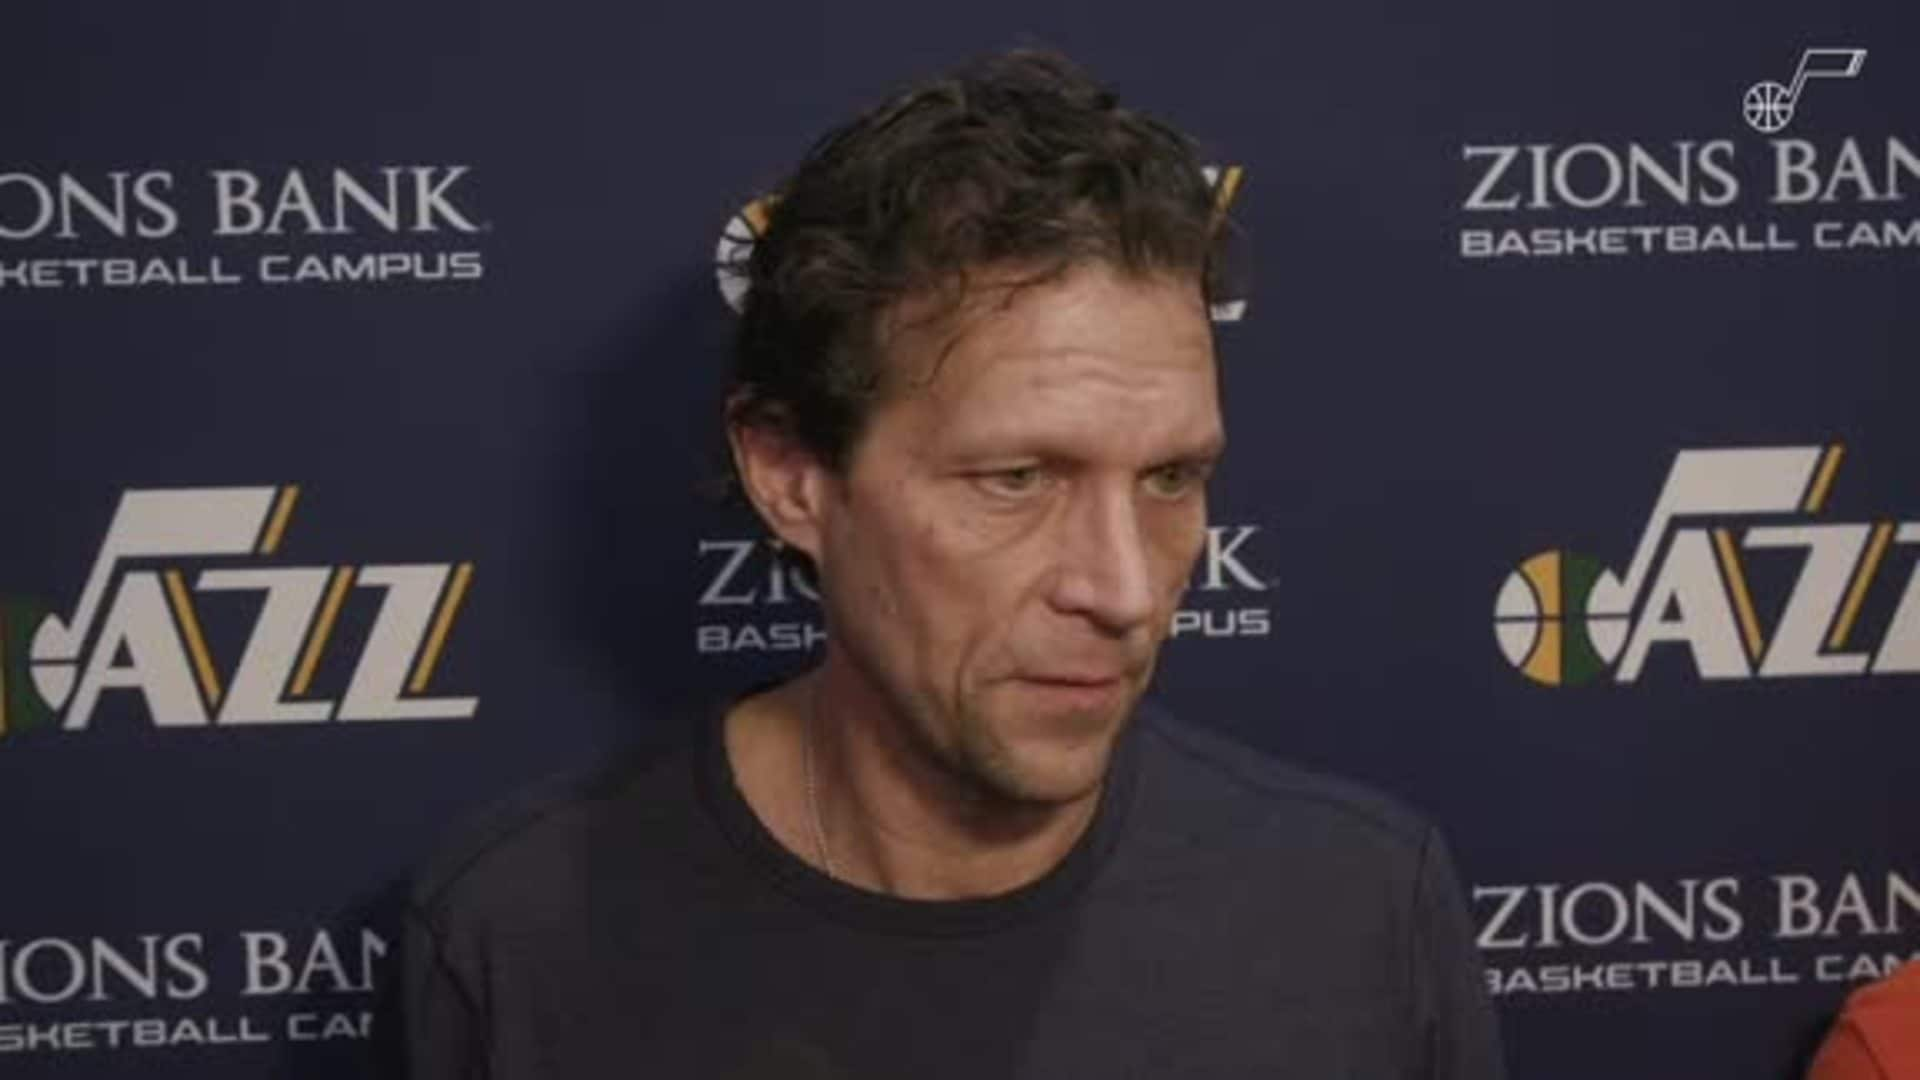 Shootaround Interview, 11.18 — Quin Snyder